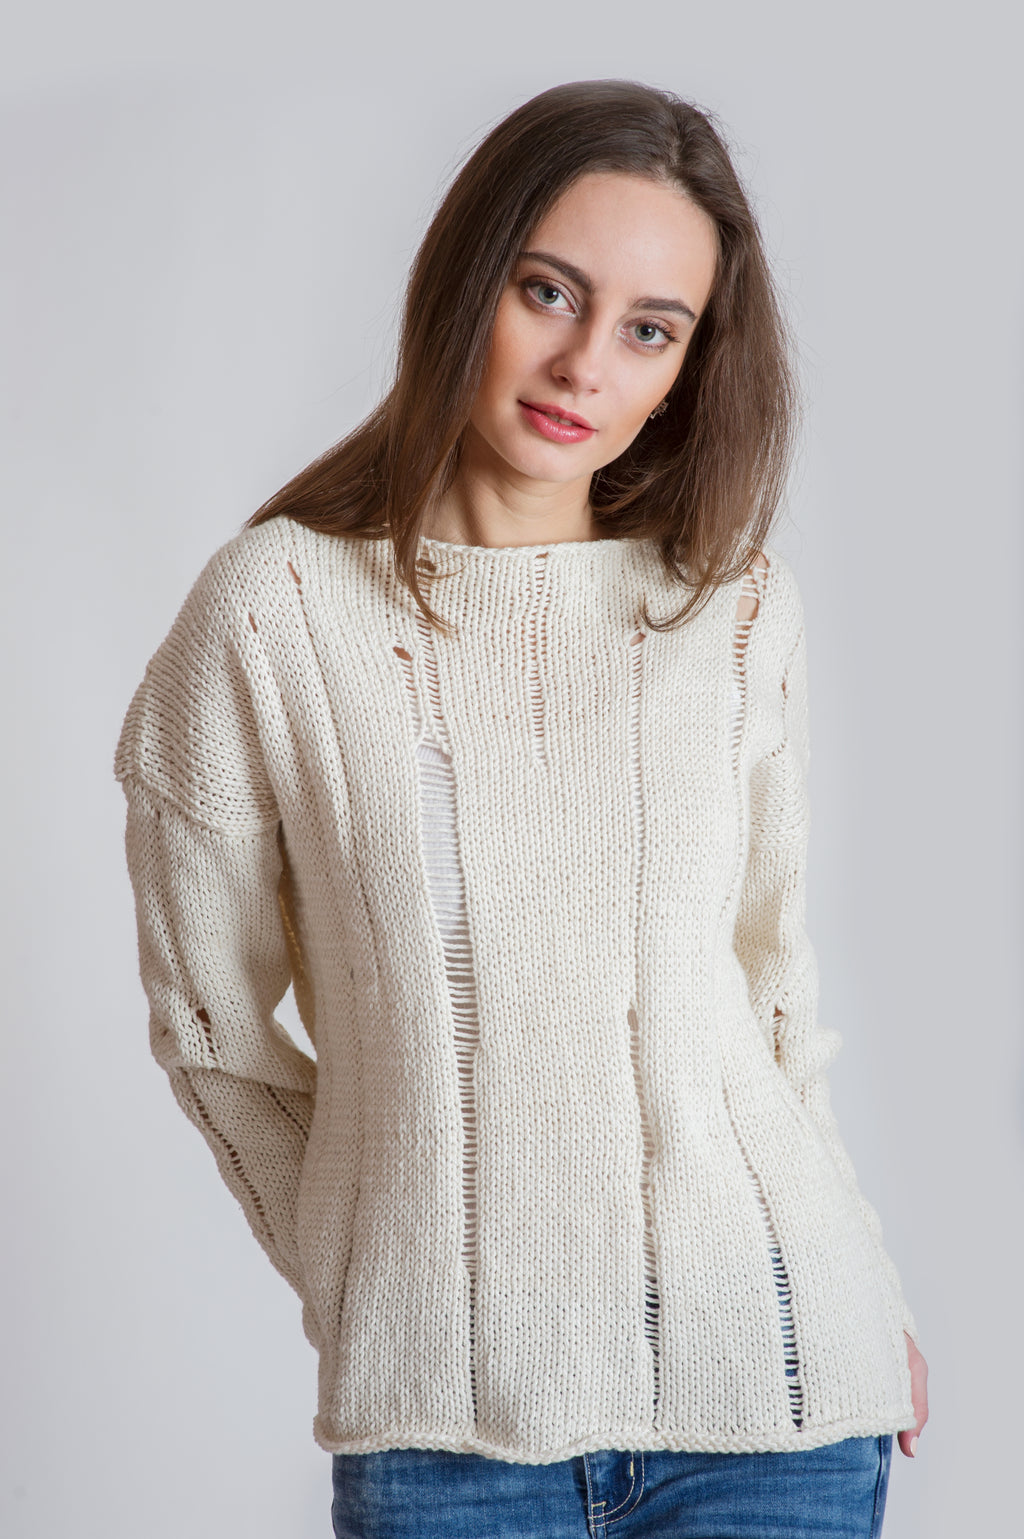 UNBLEACHED COTTON SLIP-STITCH PULLOVER